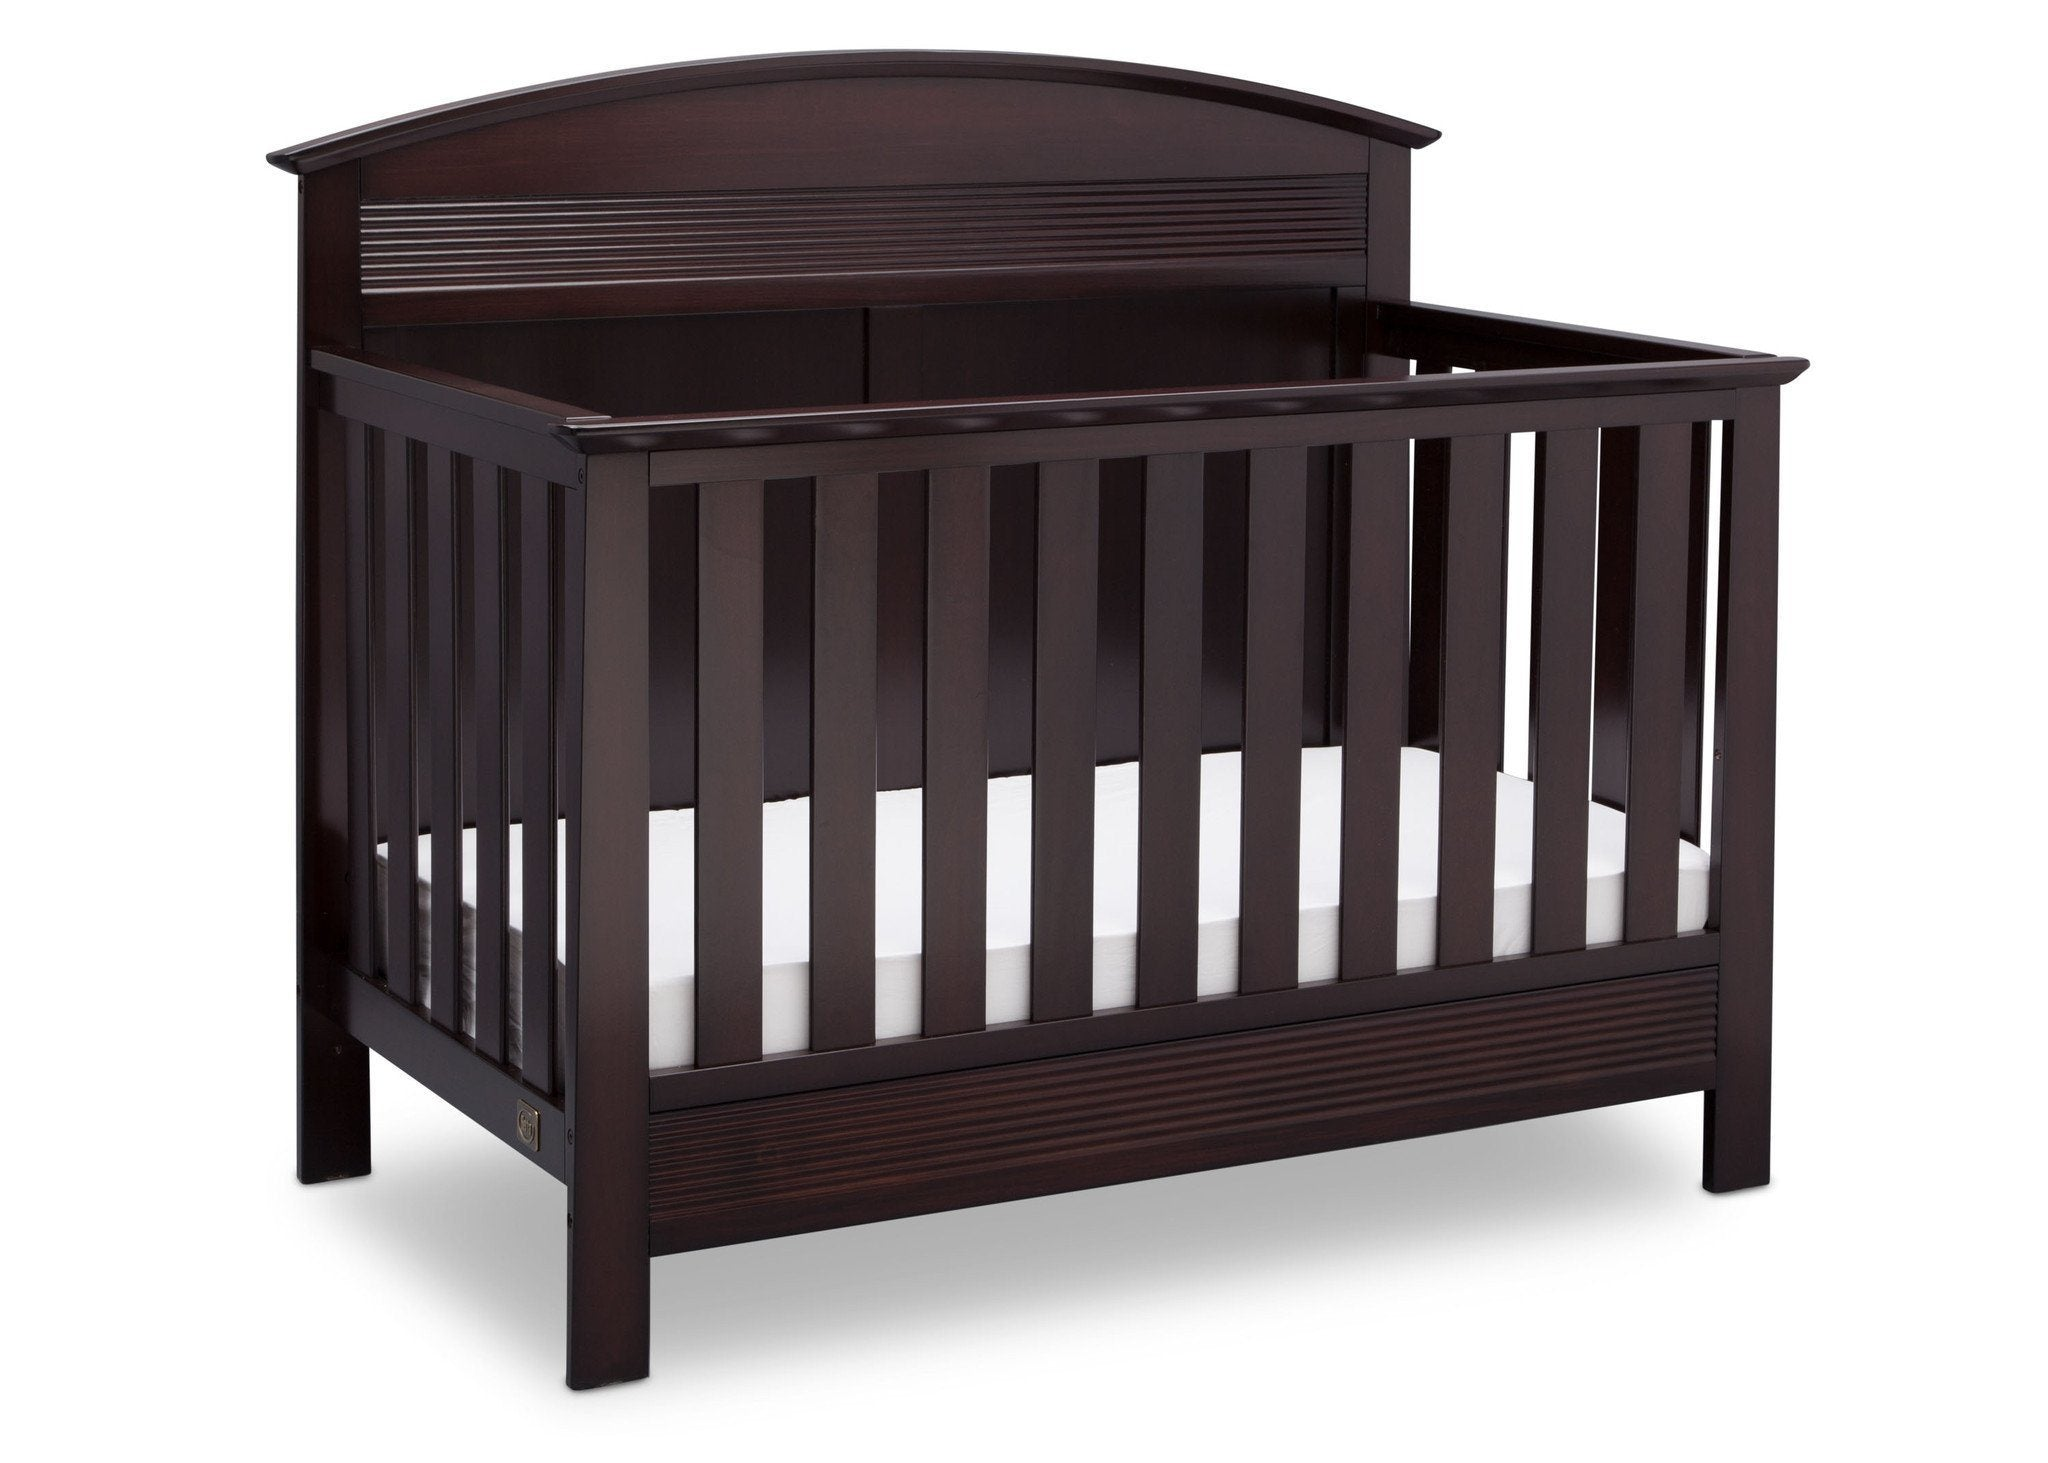 Serta Dark Chocolate (207) Ashland 4-in-1 Convertible Crib, Right Crib View c2c